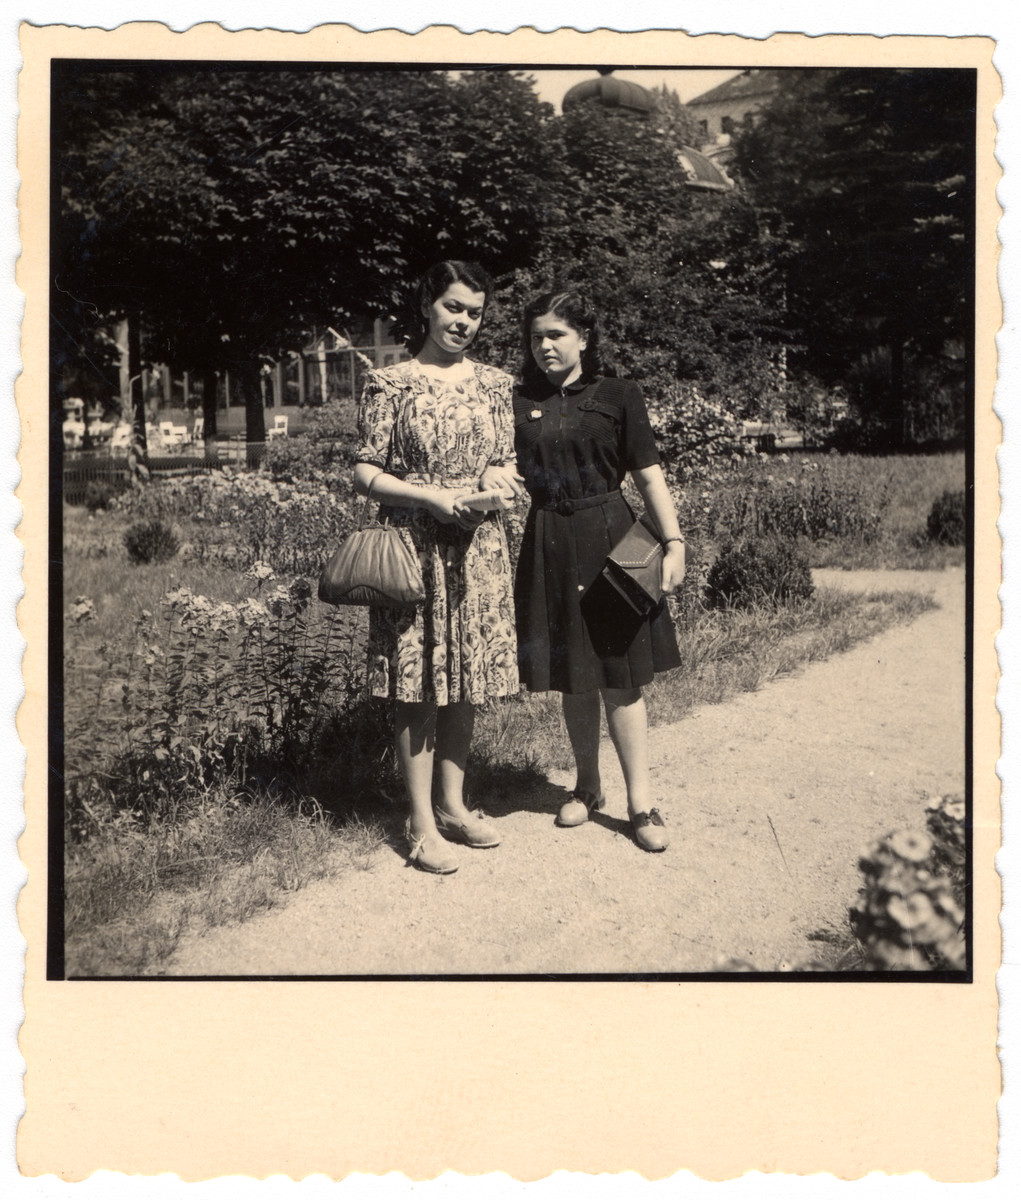 Ruth and Teresa Friedman, sisters who survived Auschwitz together, stand by a garden in Zatec after the war.